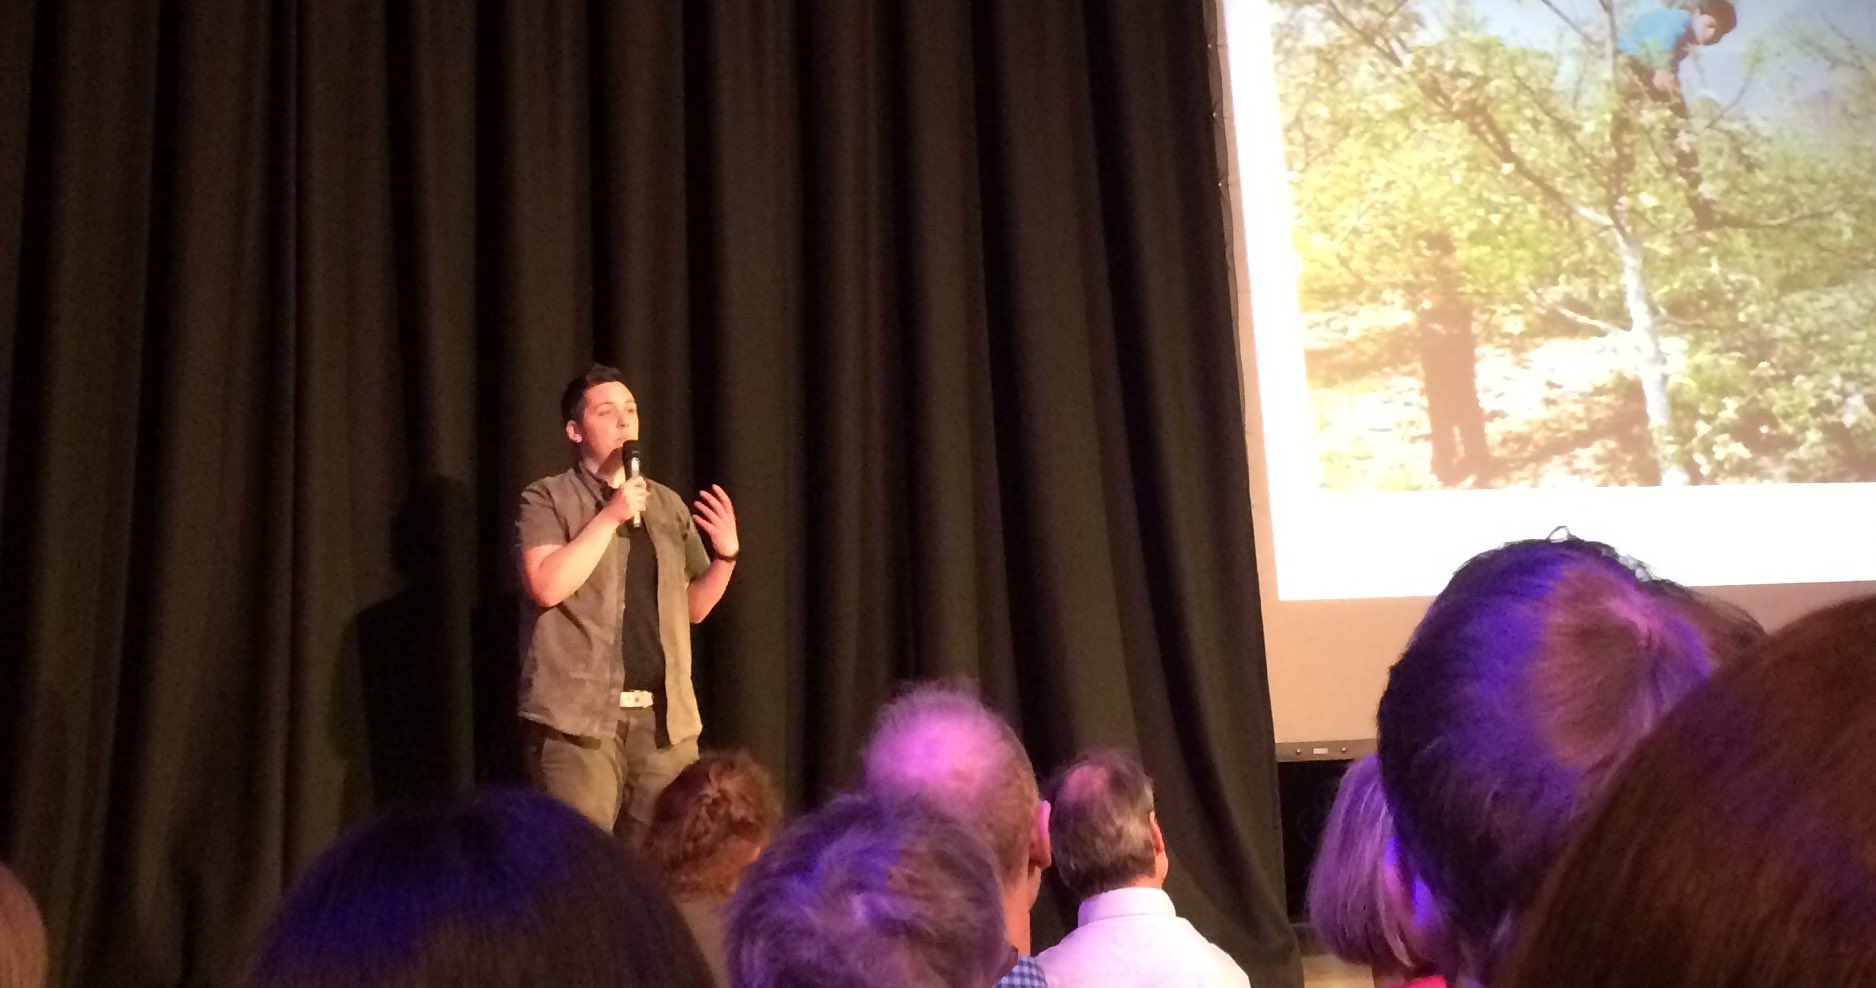 "Brilliant funny passionate moving start by Jo Kahlo ""go out plant wild flowers"" #PKN_DND https://t.co/V0bCmxSLN4"